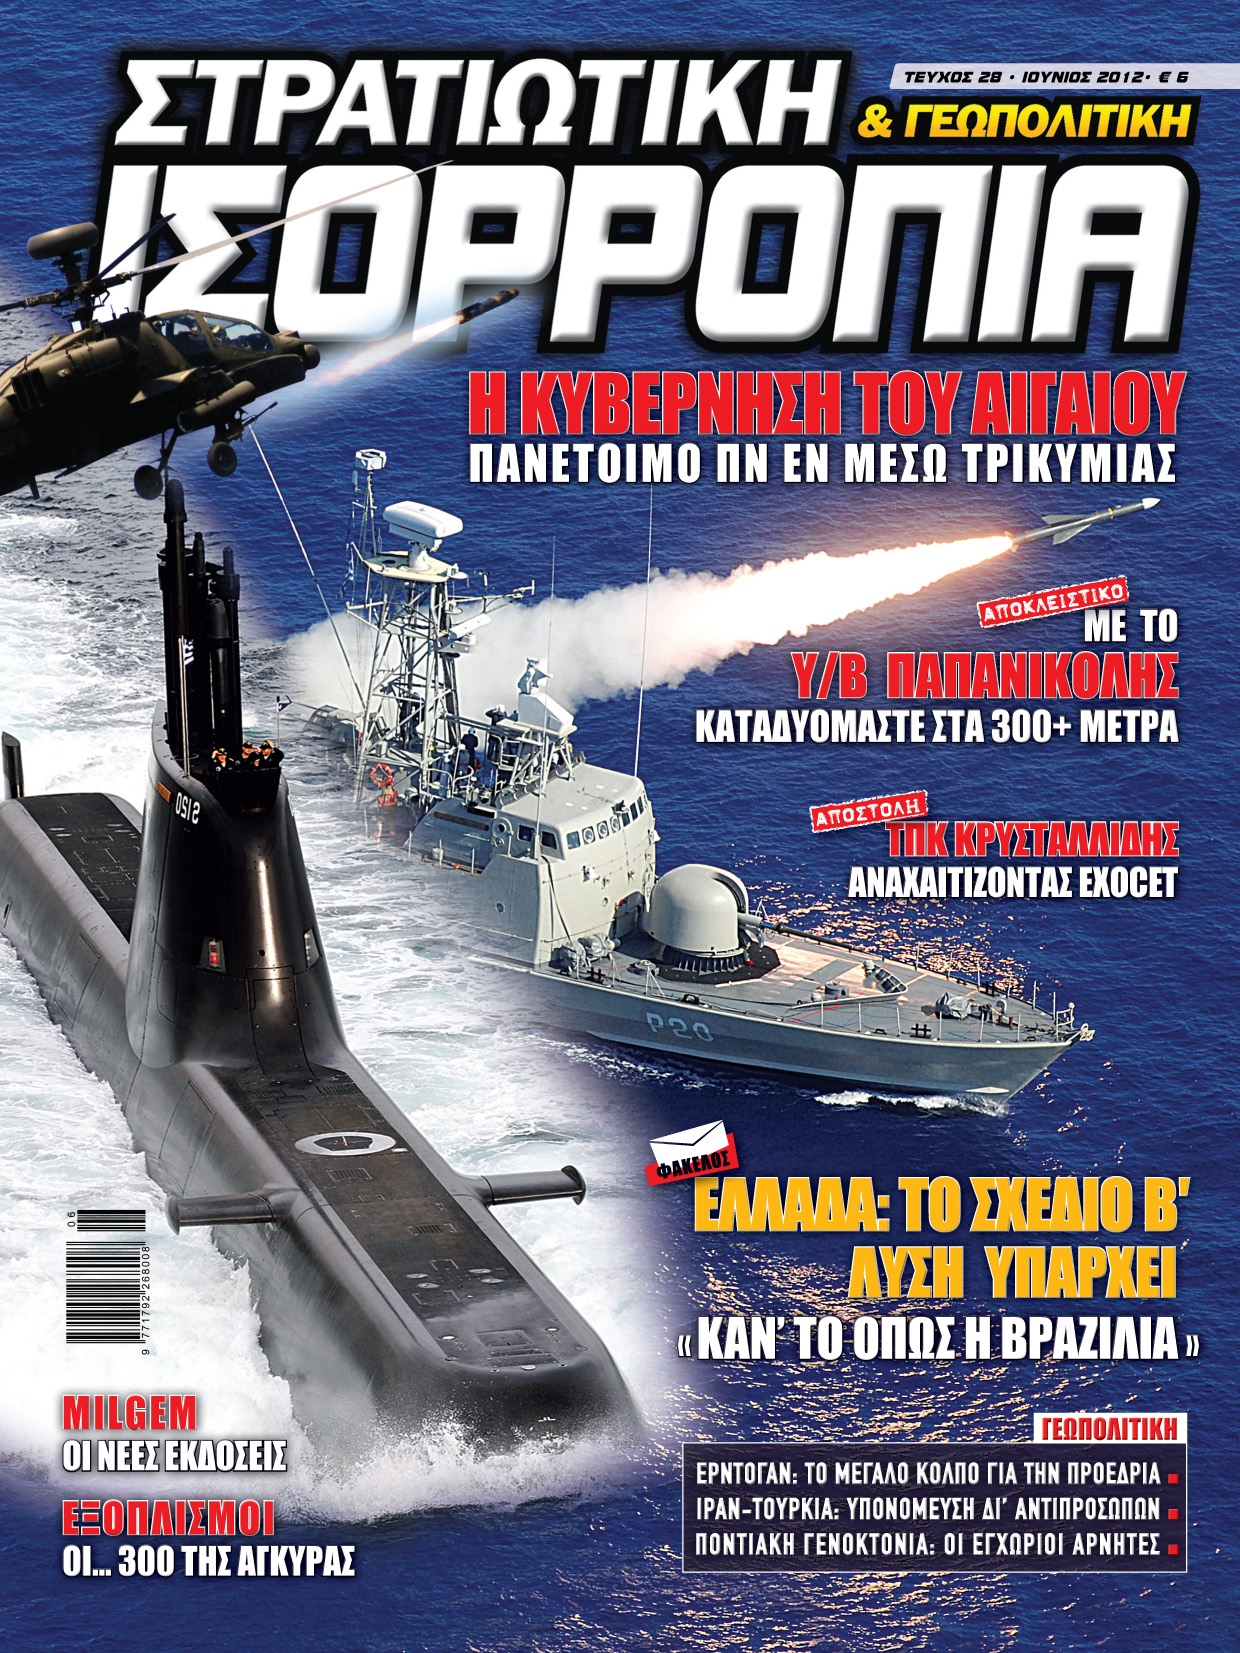 https://i2.wp.com/www.defence-point.gr/news/wp-content/uploads/2012/06/IS28_COVER.jpg